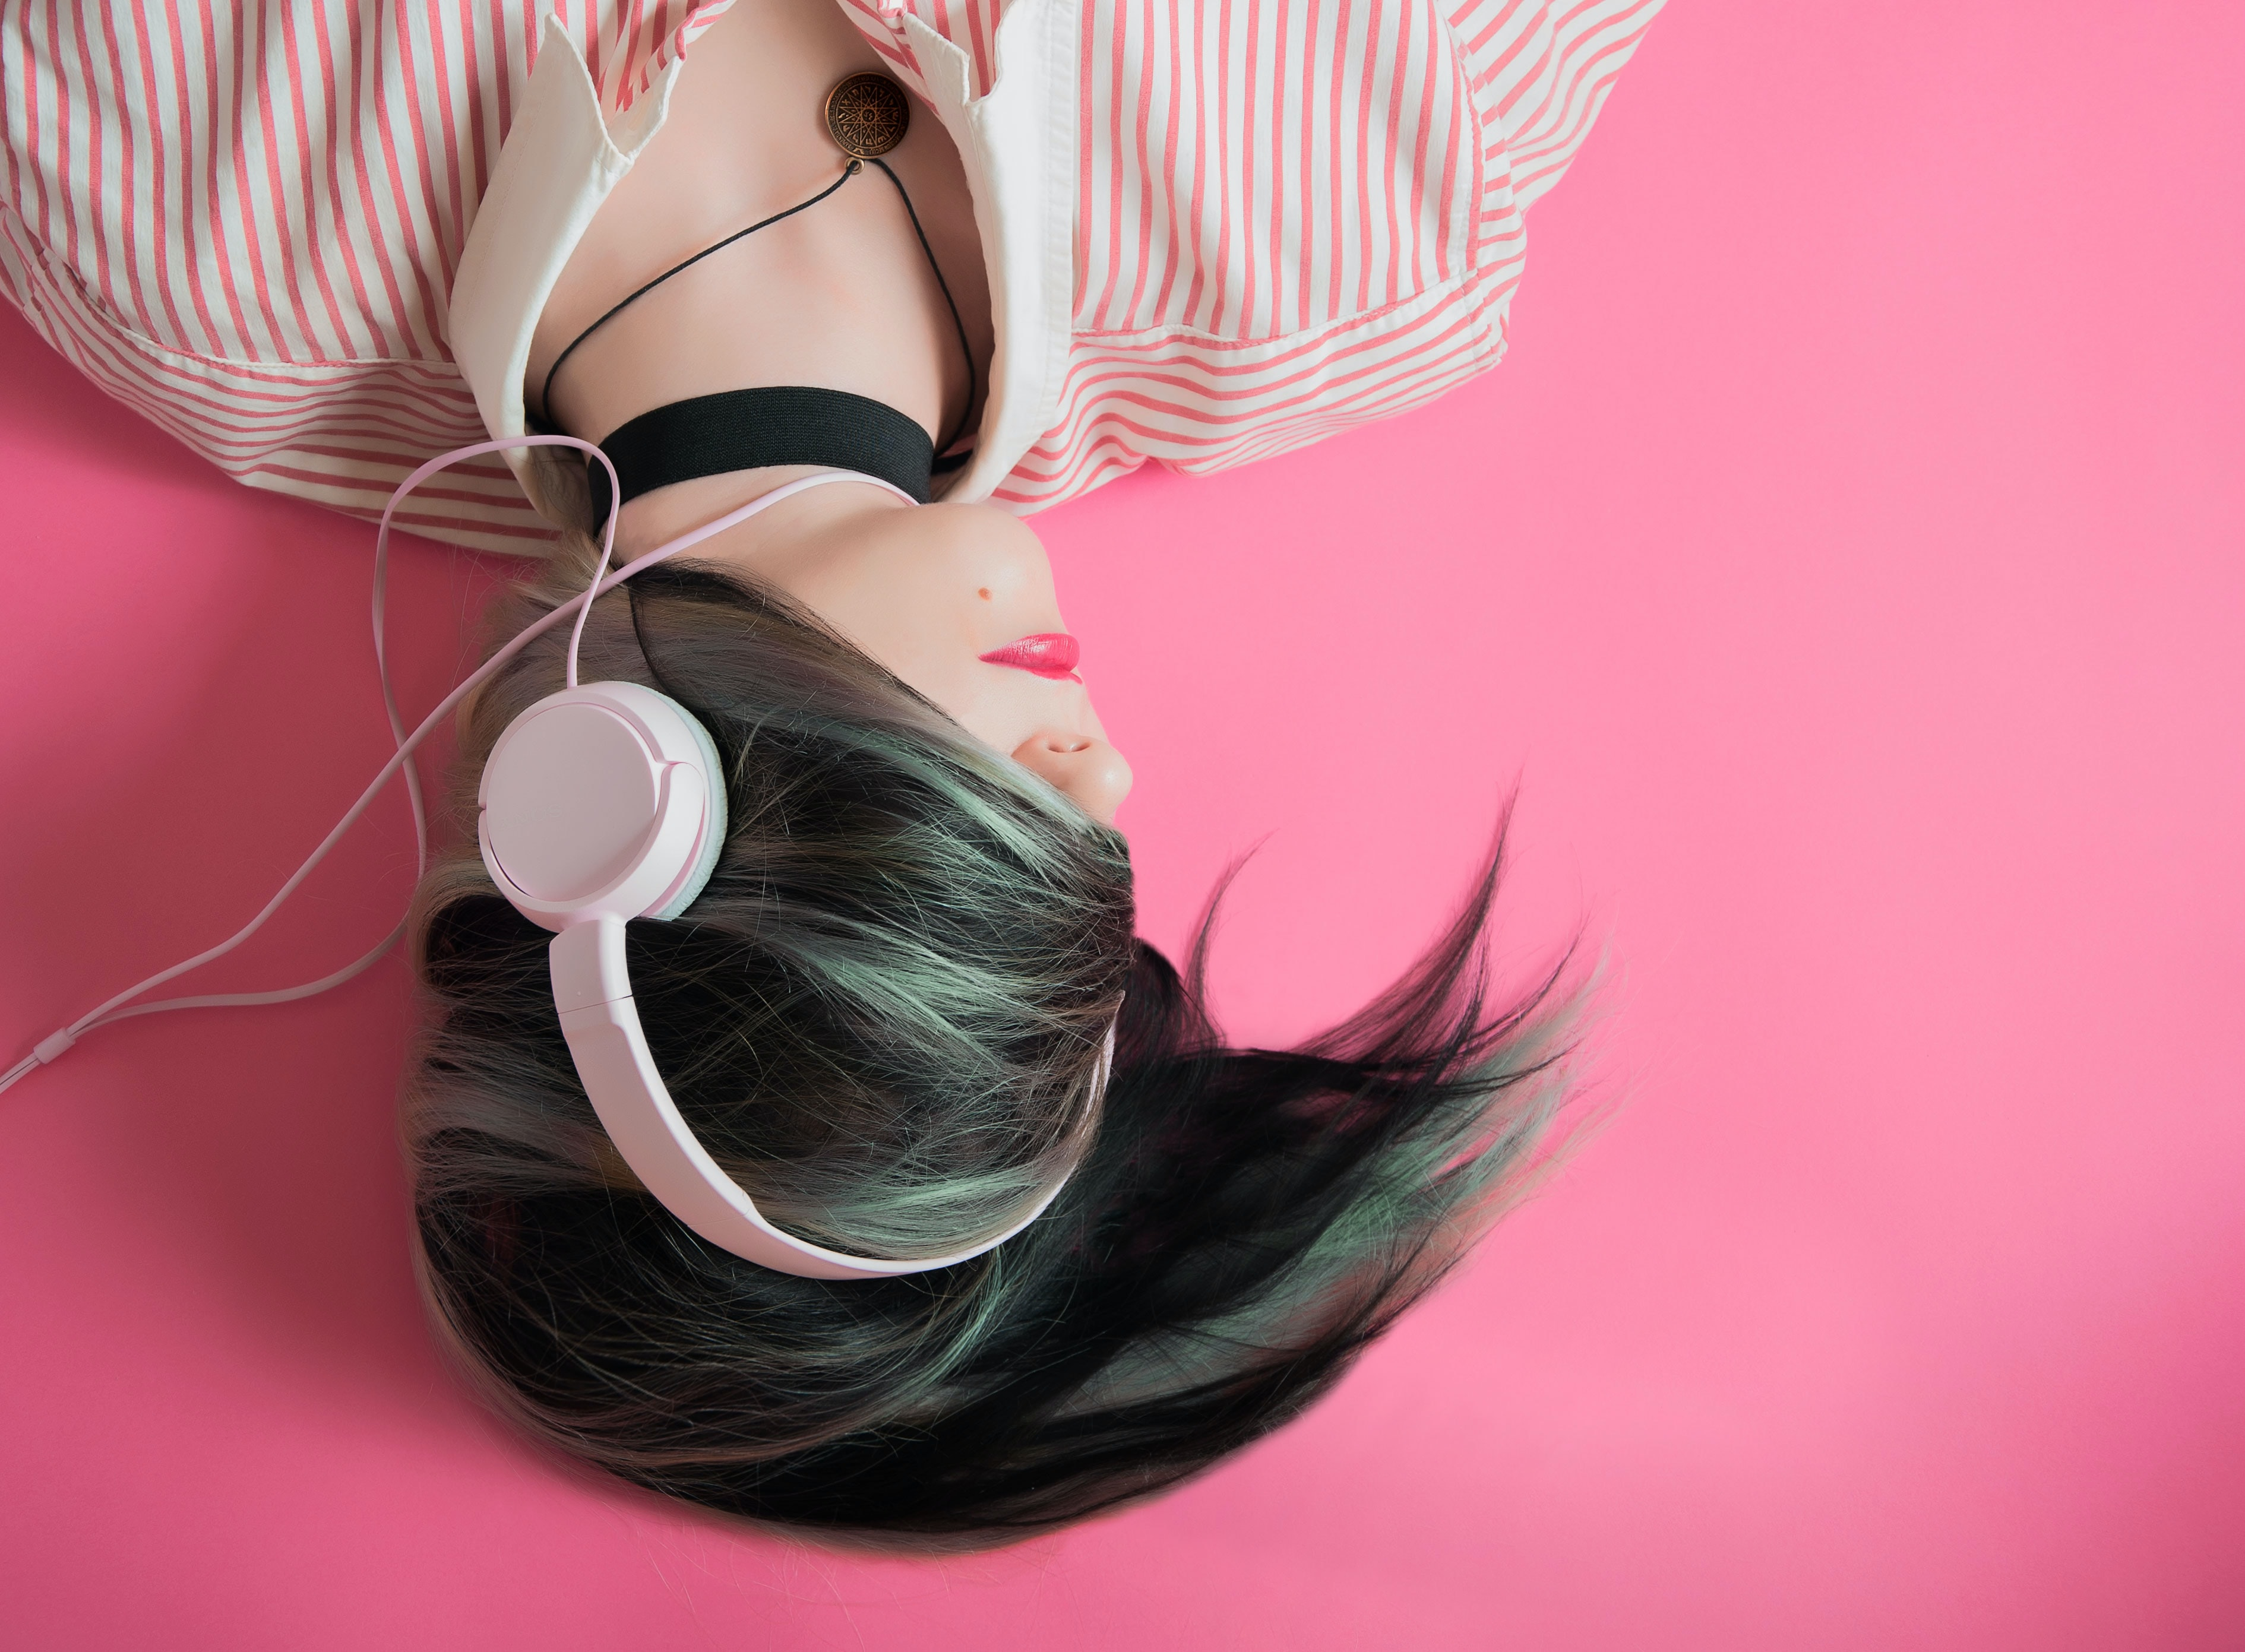 A dark-haired woman with her hair wrapped around her hair listening to music on headphones